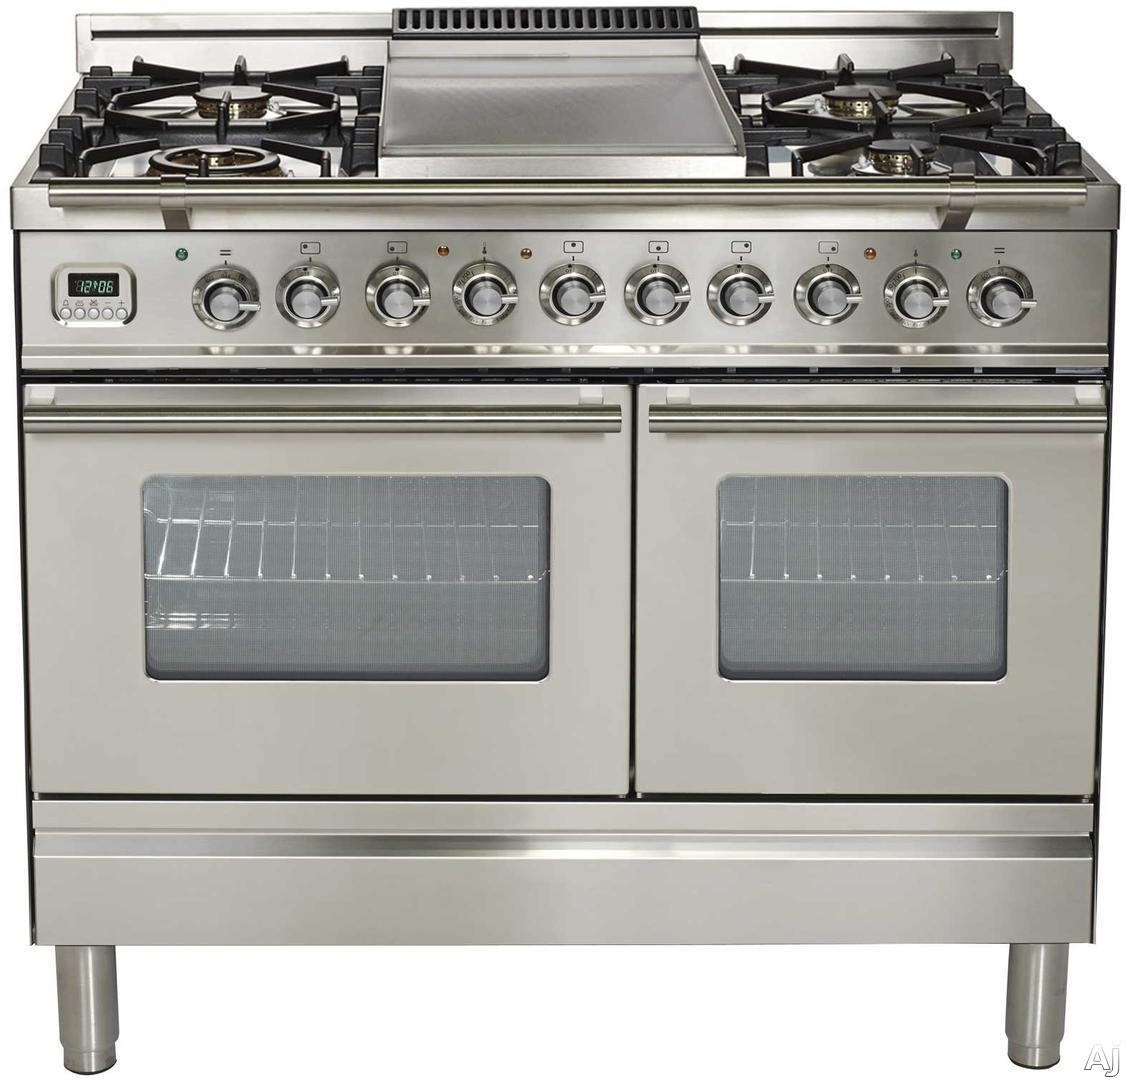 Ilve Proline Series UPDW100FDMPI 40 Inch Dual Fuel Double Oven Range With Digital Clock, Timer, Electronic Ignition, Warming Drawer, 5 Burners, Griddle and Rotisserie: Stainless Steel, 5 Burners